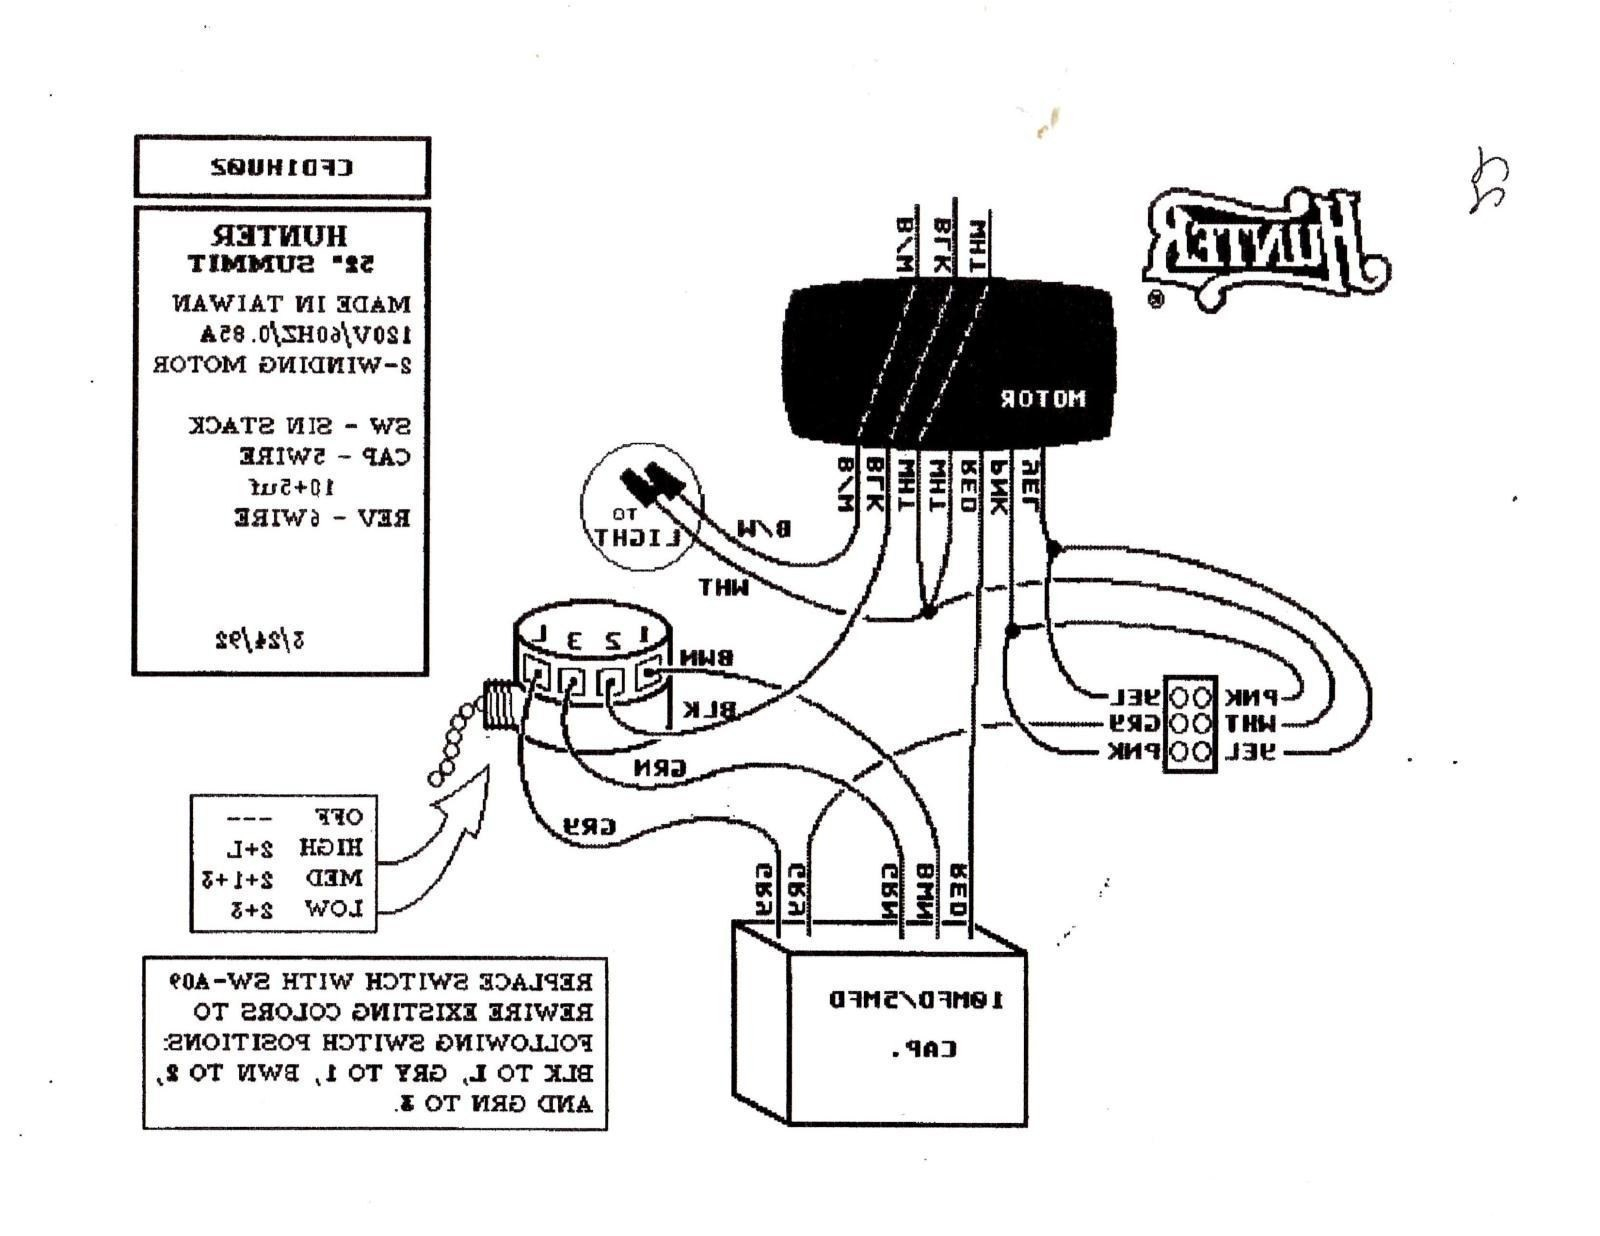 hampton bay ceiling fan capacitor wiring diagram Collection-Wiring Diagram For Ceiling Fan With Capacitor Best Hampton Bay 14-j